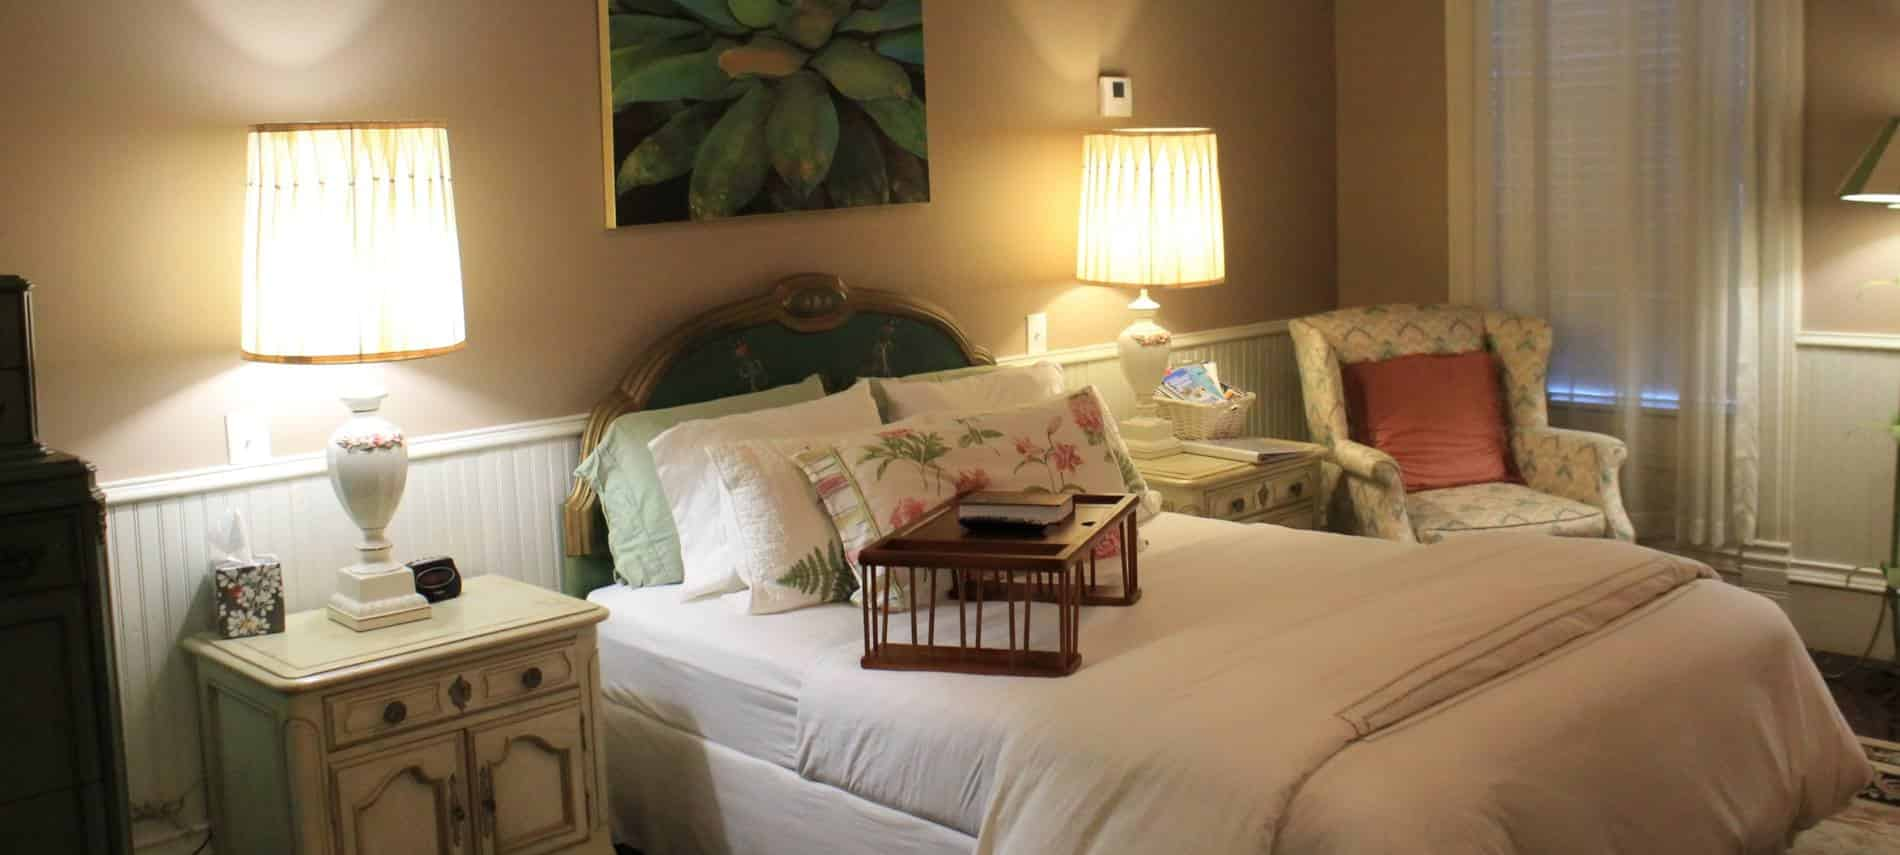 Garden guest room, tan walls, white beadboard, window with sheers, gold headboard and white bedding, nightstands with lamps, corner chair